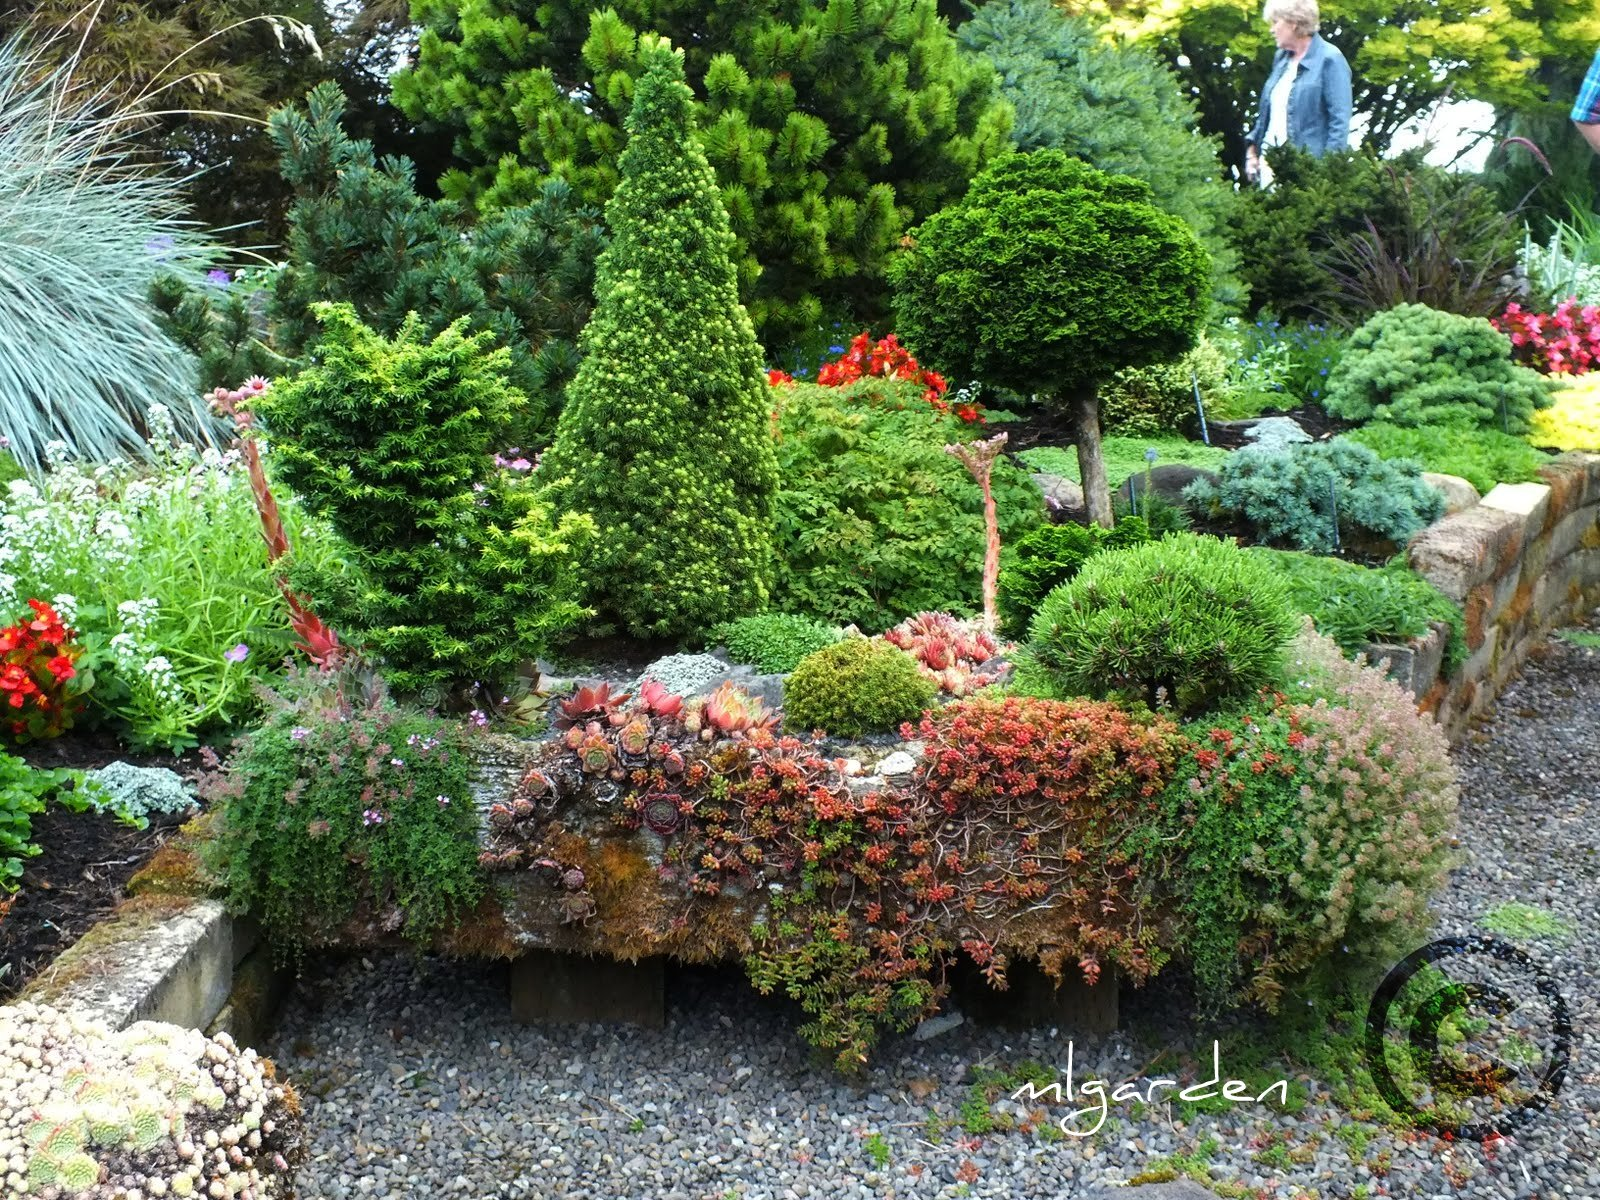 Dwarf conifer garden design native home garden design for Mini garden landscape design